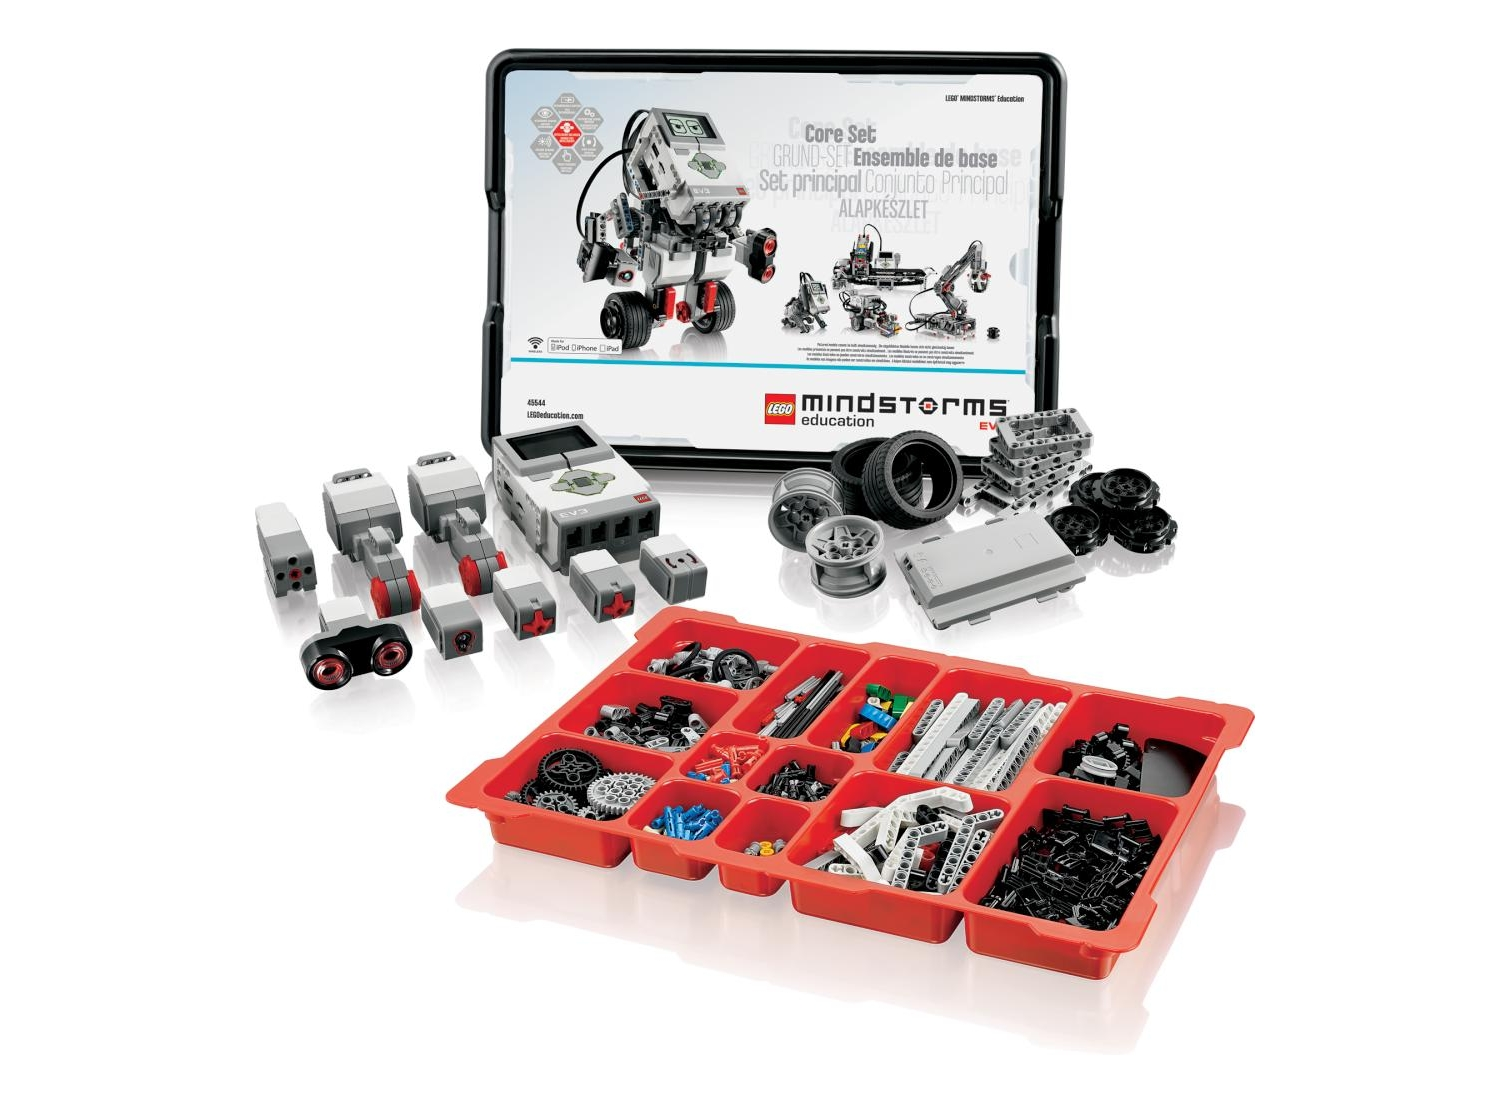 parrot drone 3 0 with Lego Mindstorms Ev3 Core Set Pagrindinis Rinkinys 45544 on F 1208503 Auc4752135110012 further 005094 also Rougon Alpes De Haute Provence France 3 besides Lego Mindstorms Ev3 Core Set Pagrindinis Rinkinys 45544 in addition Parrot Sequoia Multi Spectral Sensor.